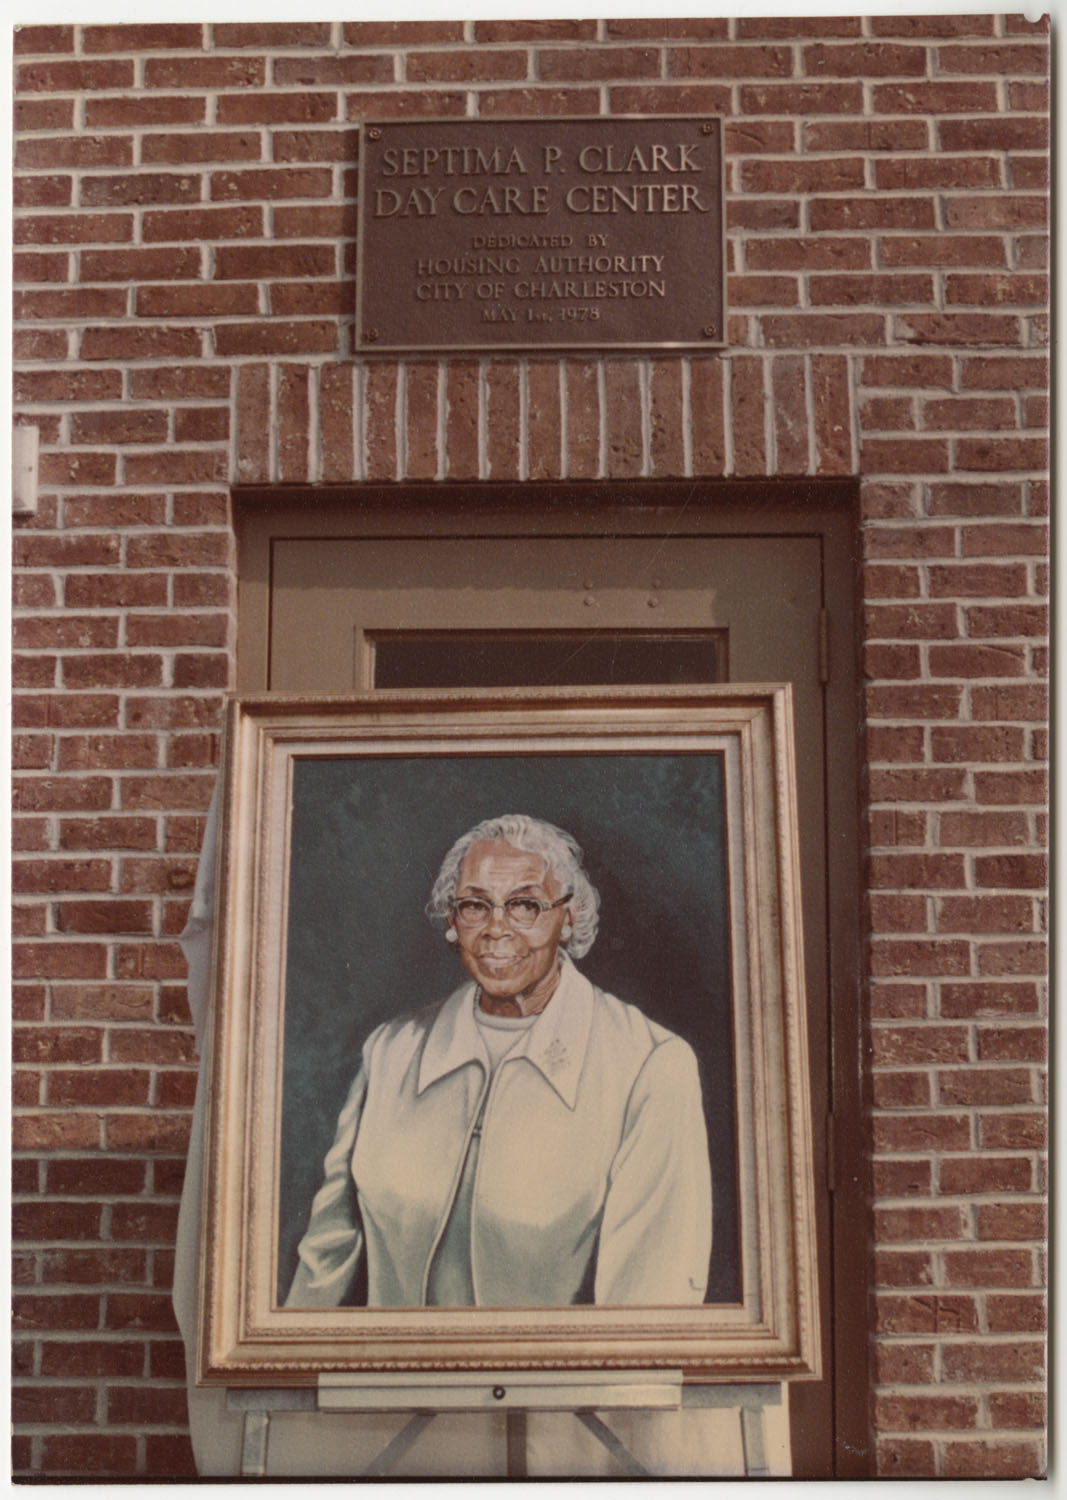 Septima P. Clark Portrait and Plaque, Septima P. Clark Day Care Center Ceremony, May 19, 1978